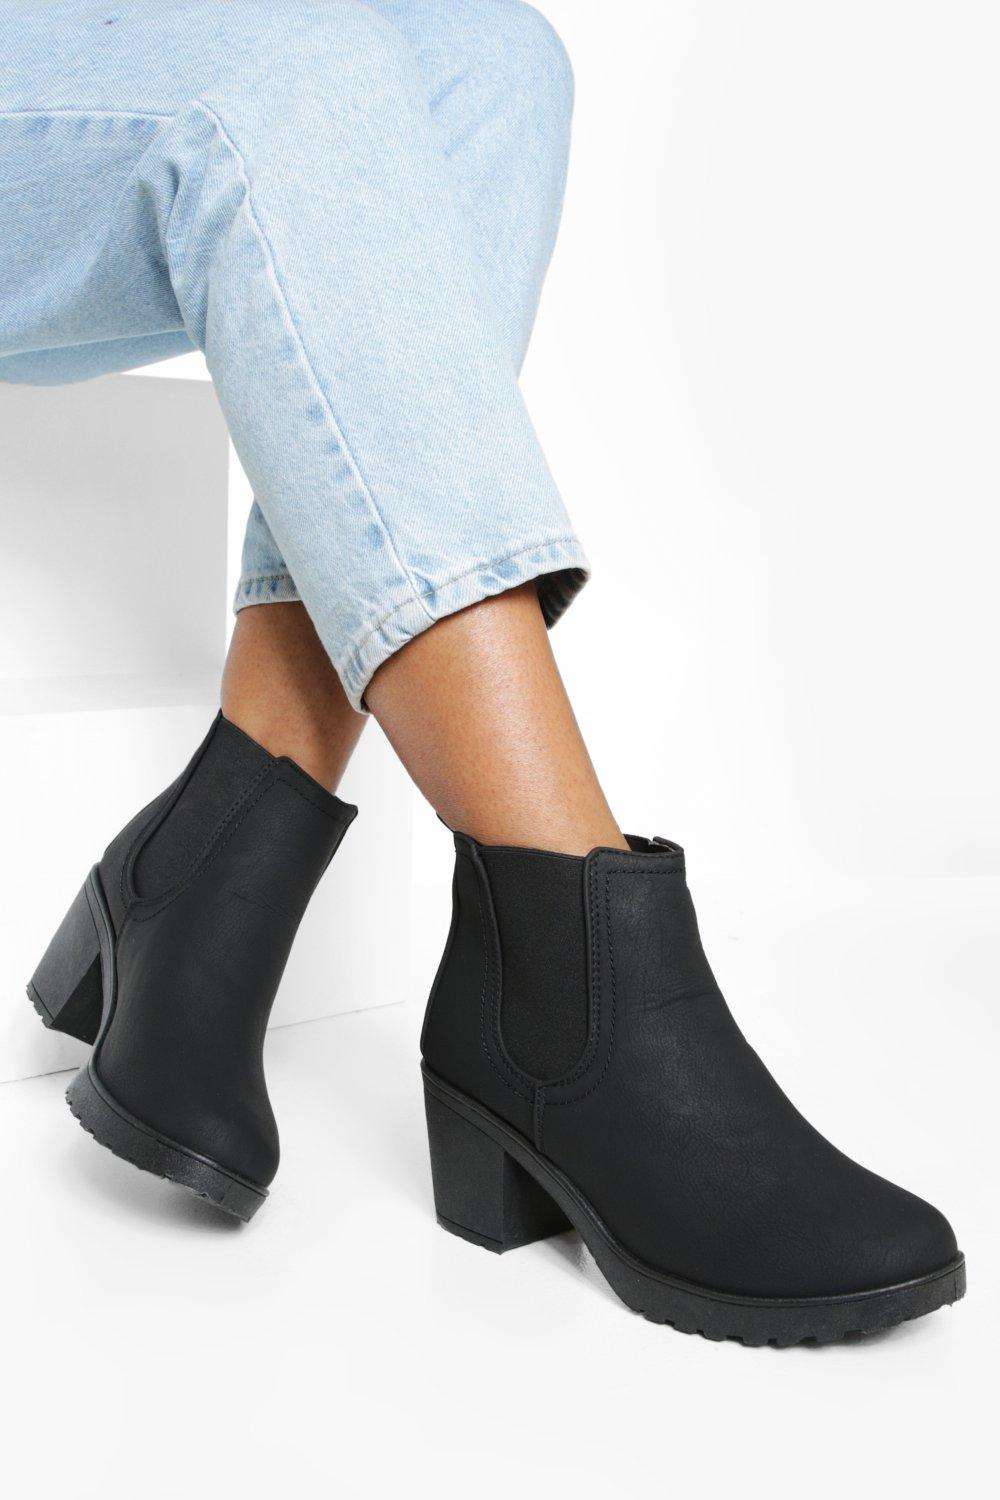 Women's Boots | Chelsea Boots and Ankle Boots | boohoo